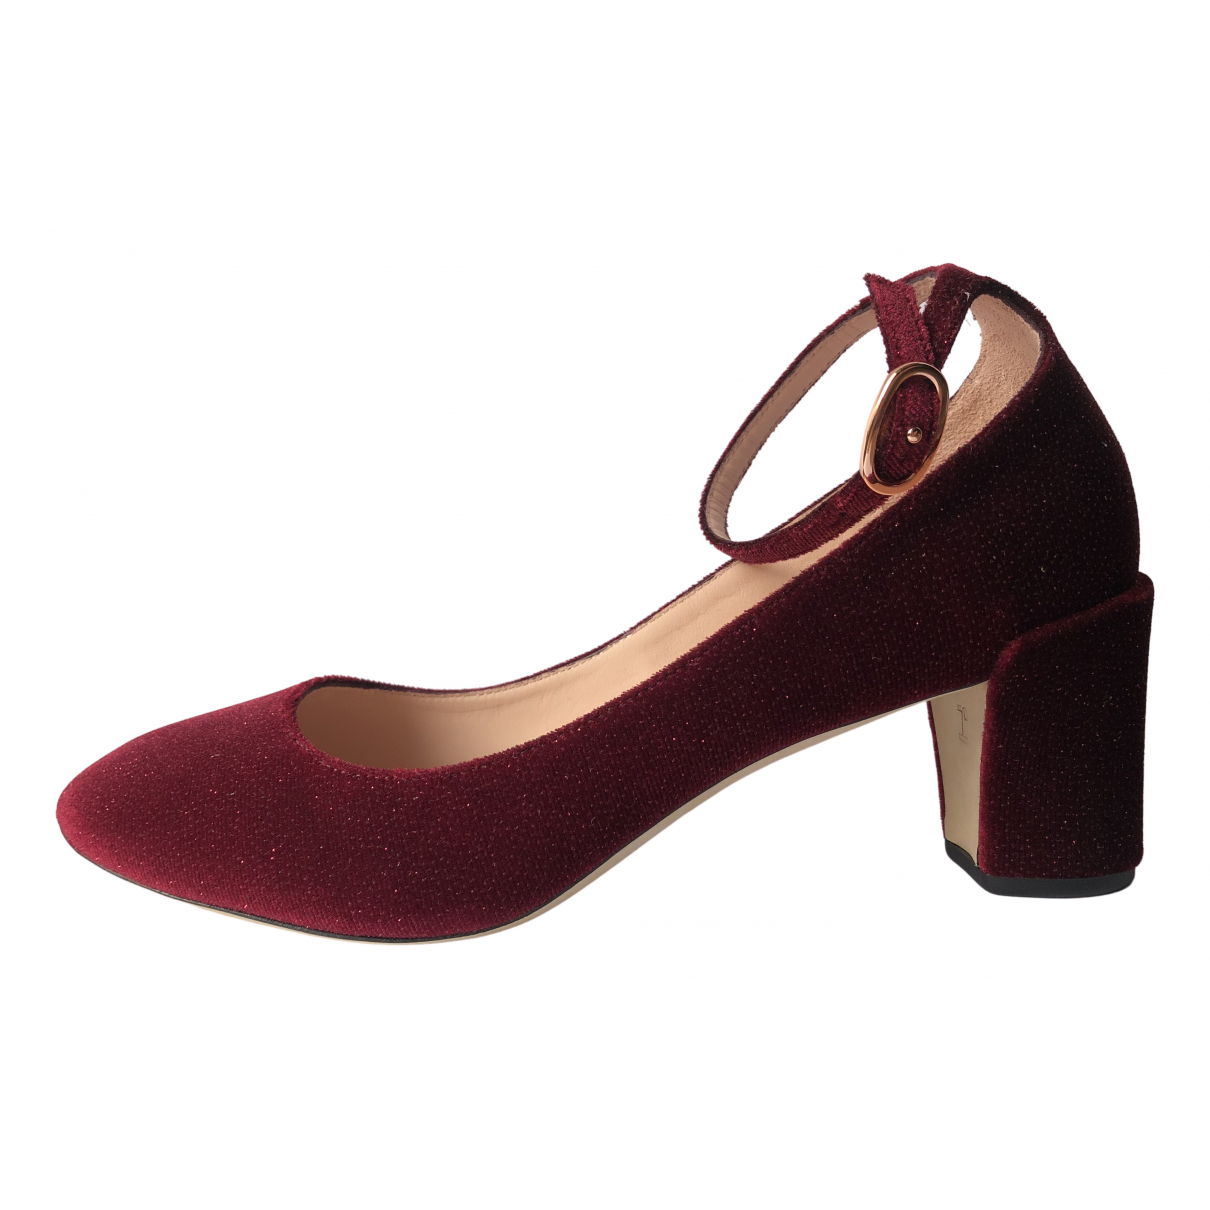 Repetto \N Ballerinas in  Rot Samt